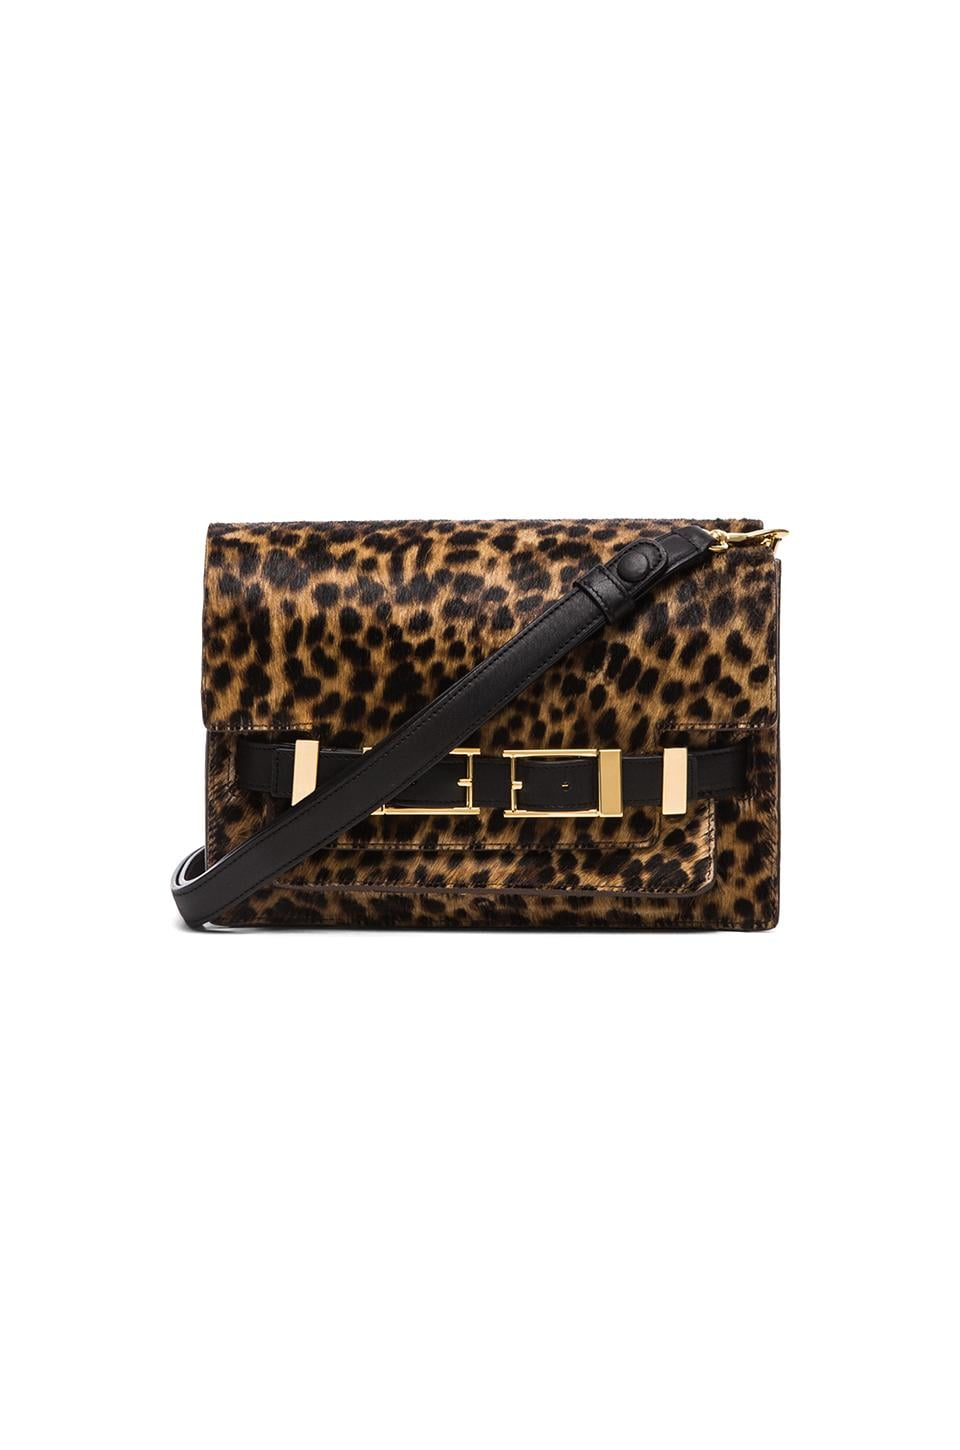 A.L.C. Hutton Clutch in Leopard